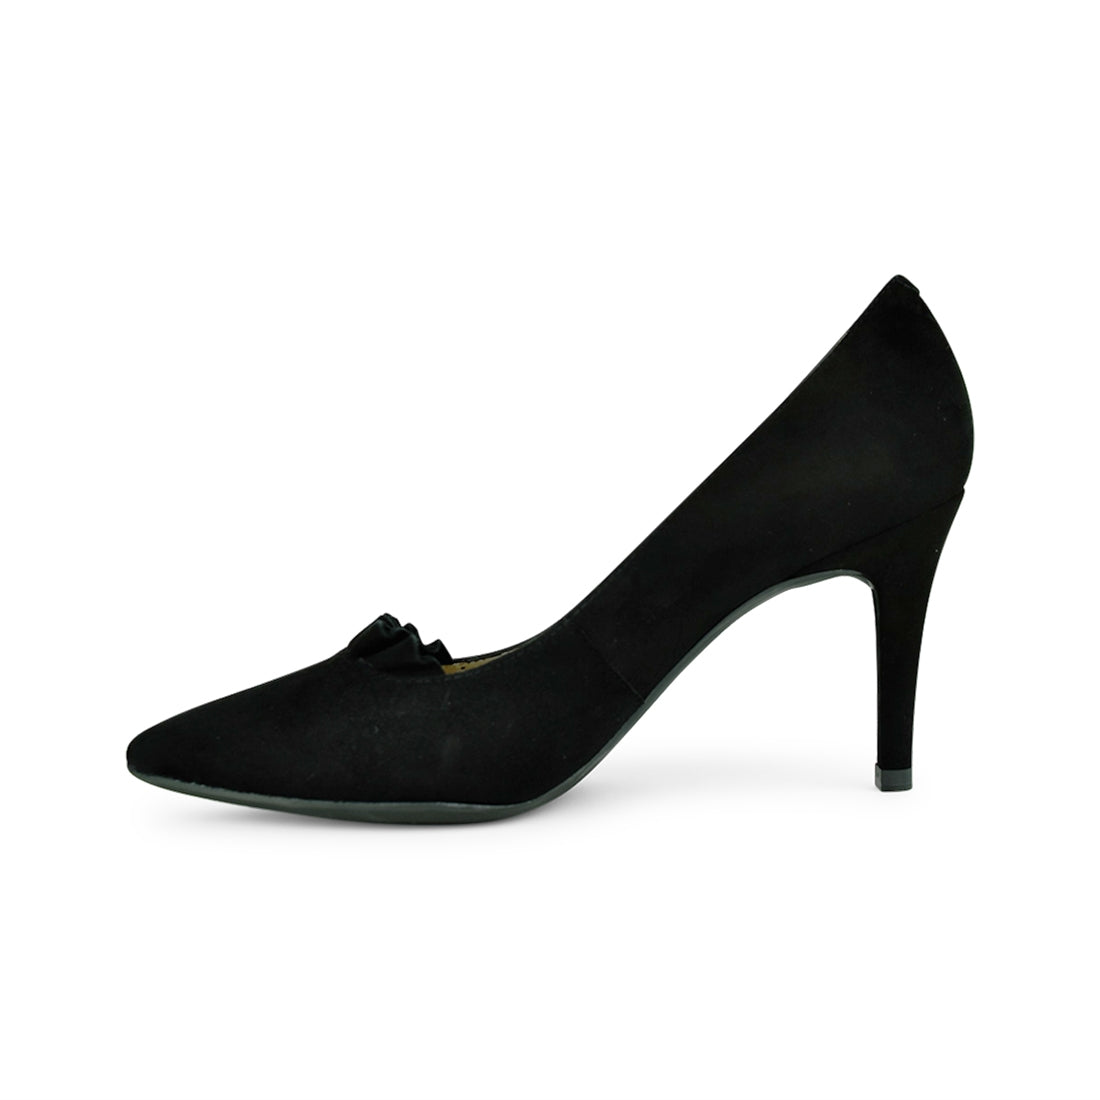 DALI - Unisa Court Shoe Black Suede